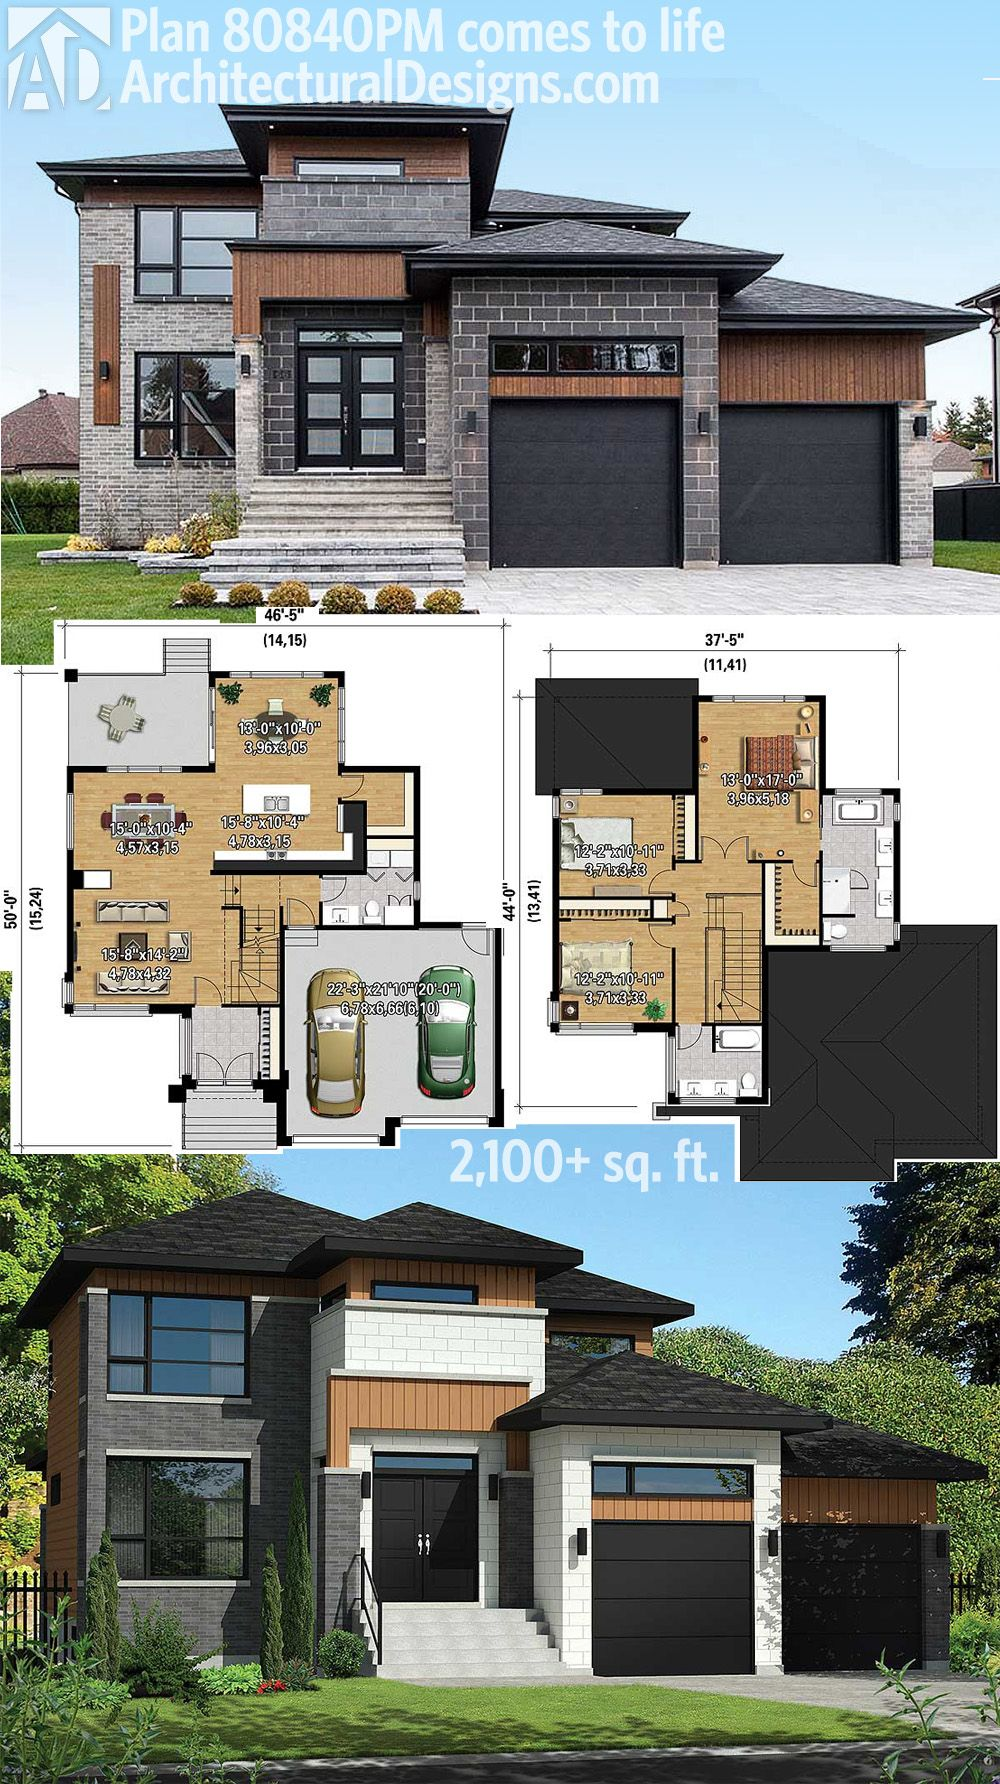 Architectural Designs Modern House Plan 80840PM gives you over 2 100 square  feet of living with 3. Plan 80840PM  Multi Level Modern House Plan   Exterior colors